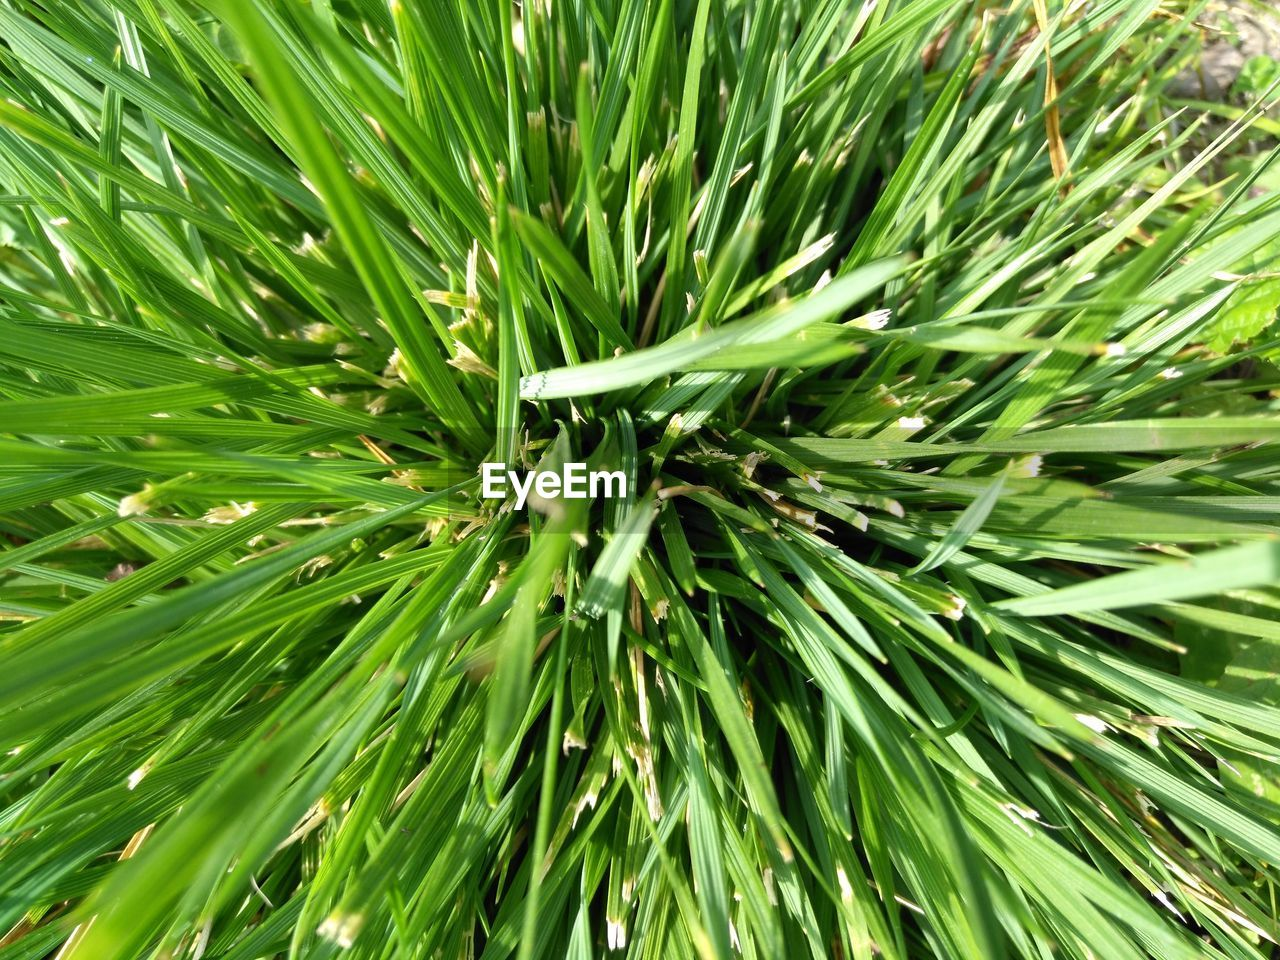 green color, growth, full frame, backgrounds, plant, beauty in nature, no people, close-up, nature, day, leaf, plant part, outdoors, tree, freshness, tranquility, green, natural pattern, needle - plant part, pine tree, spiky, coniferous tree